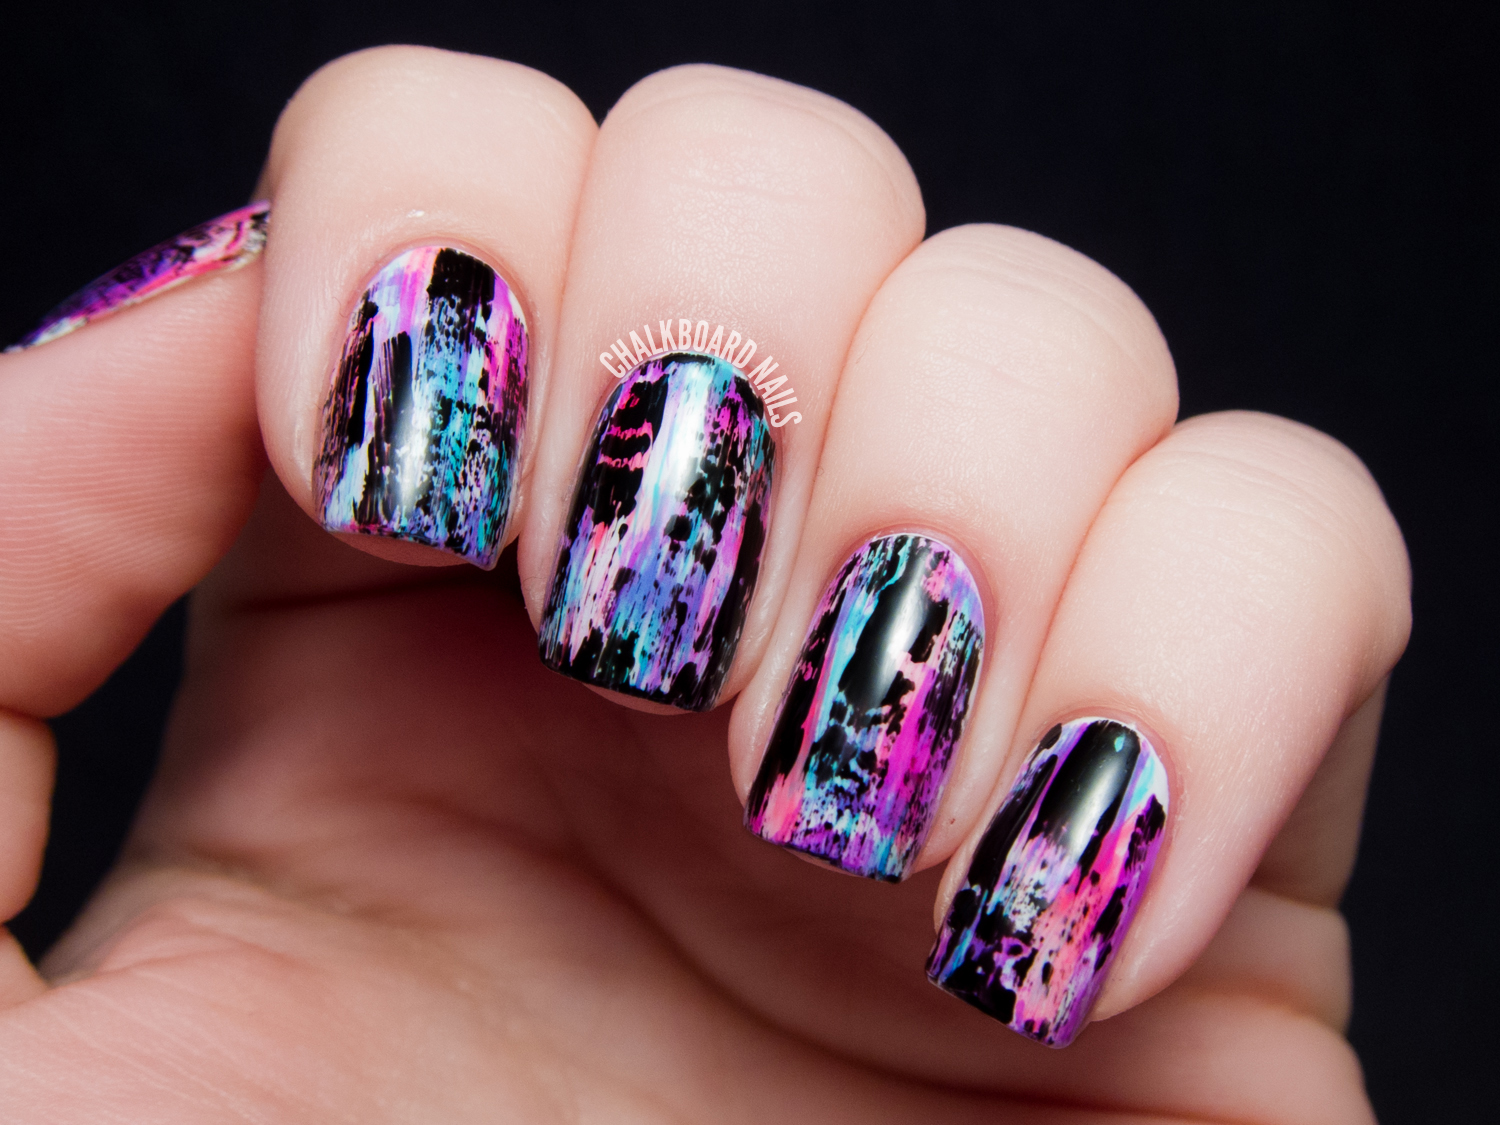 Tutorial Distressed Nail Art Punkgrungy Effect Chalkboard